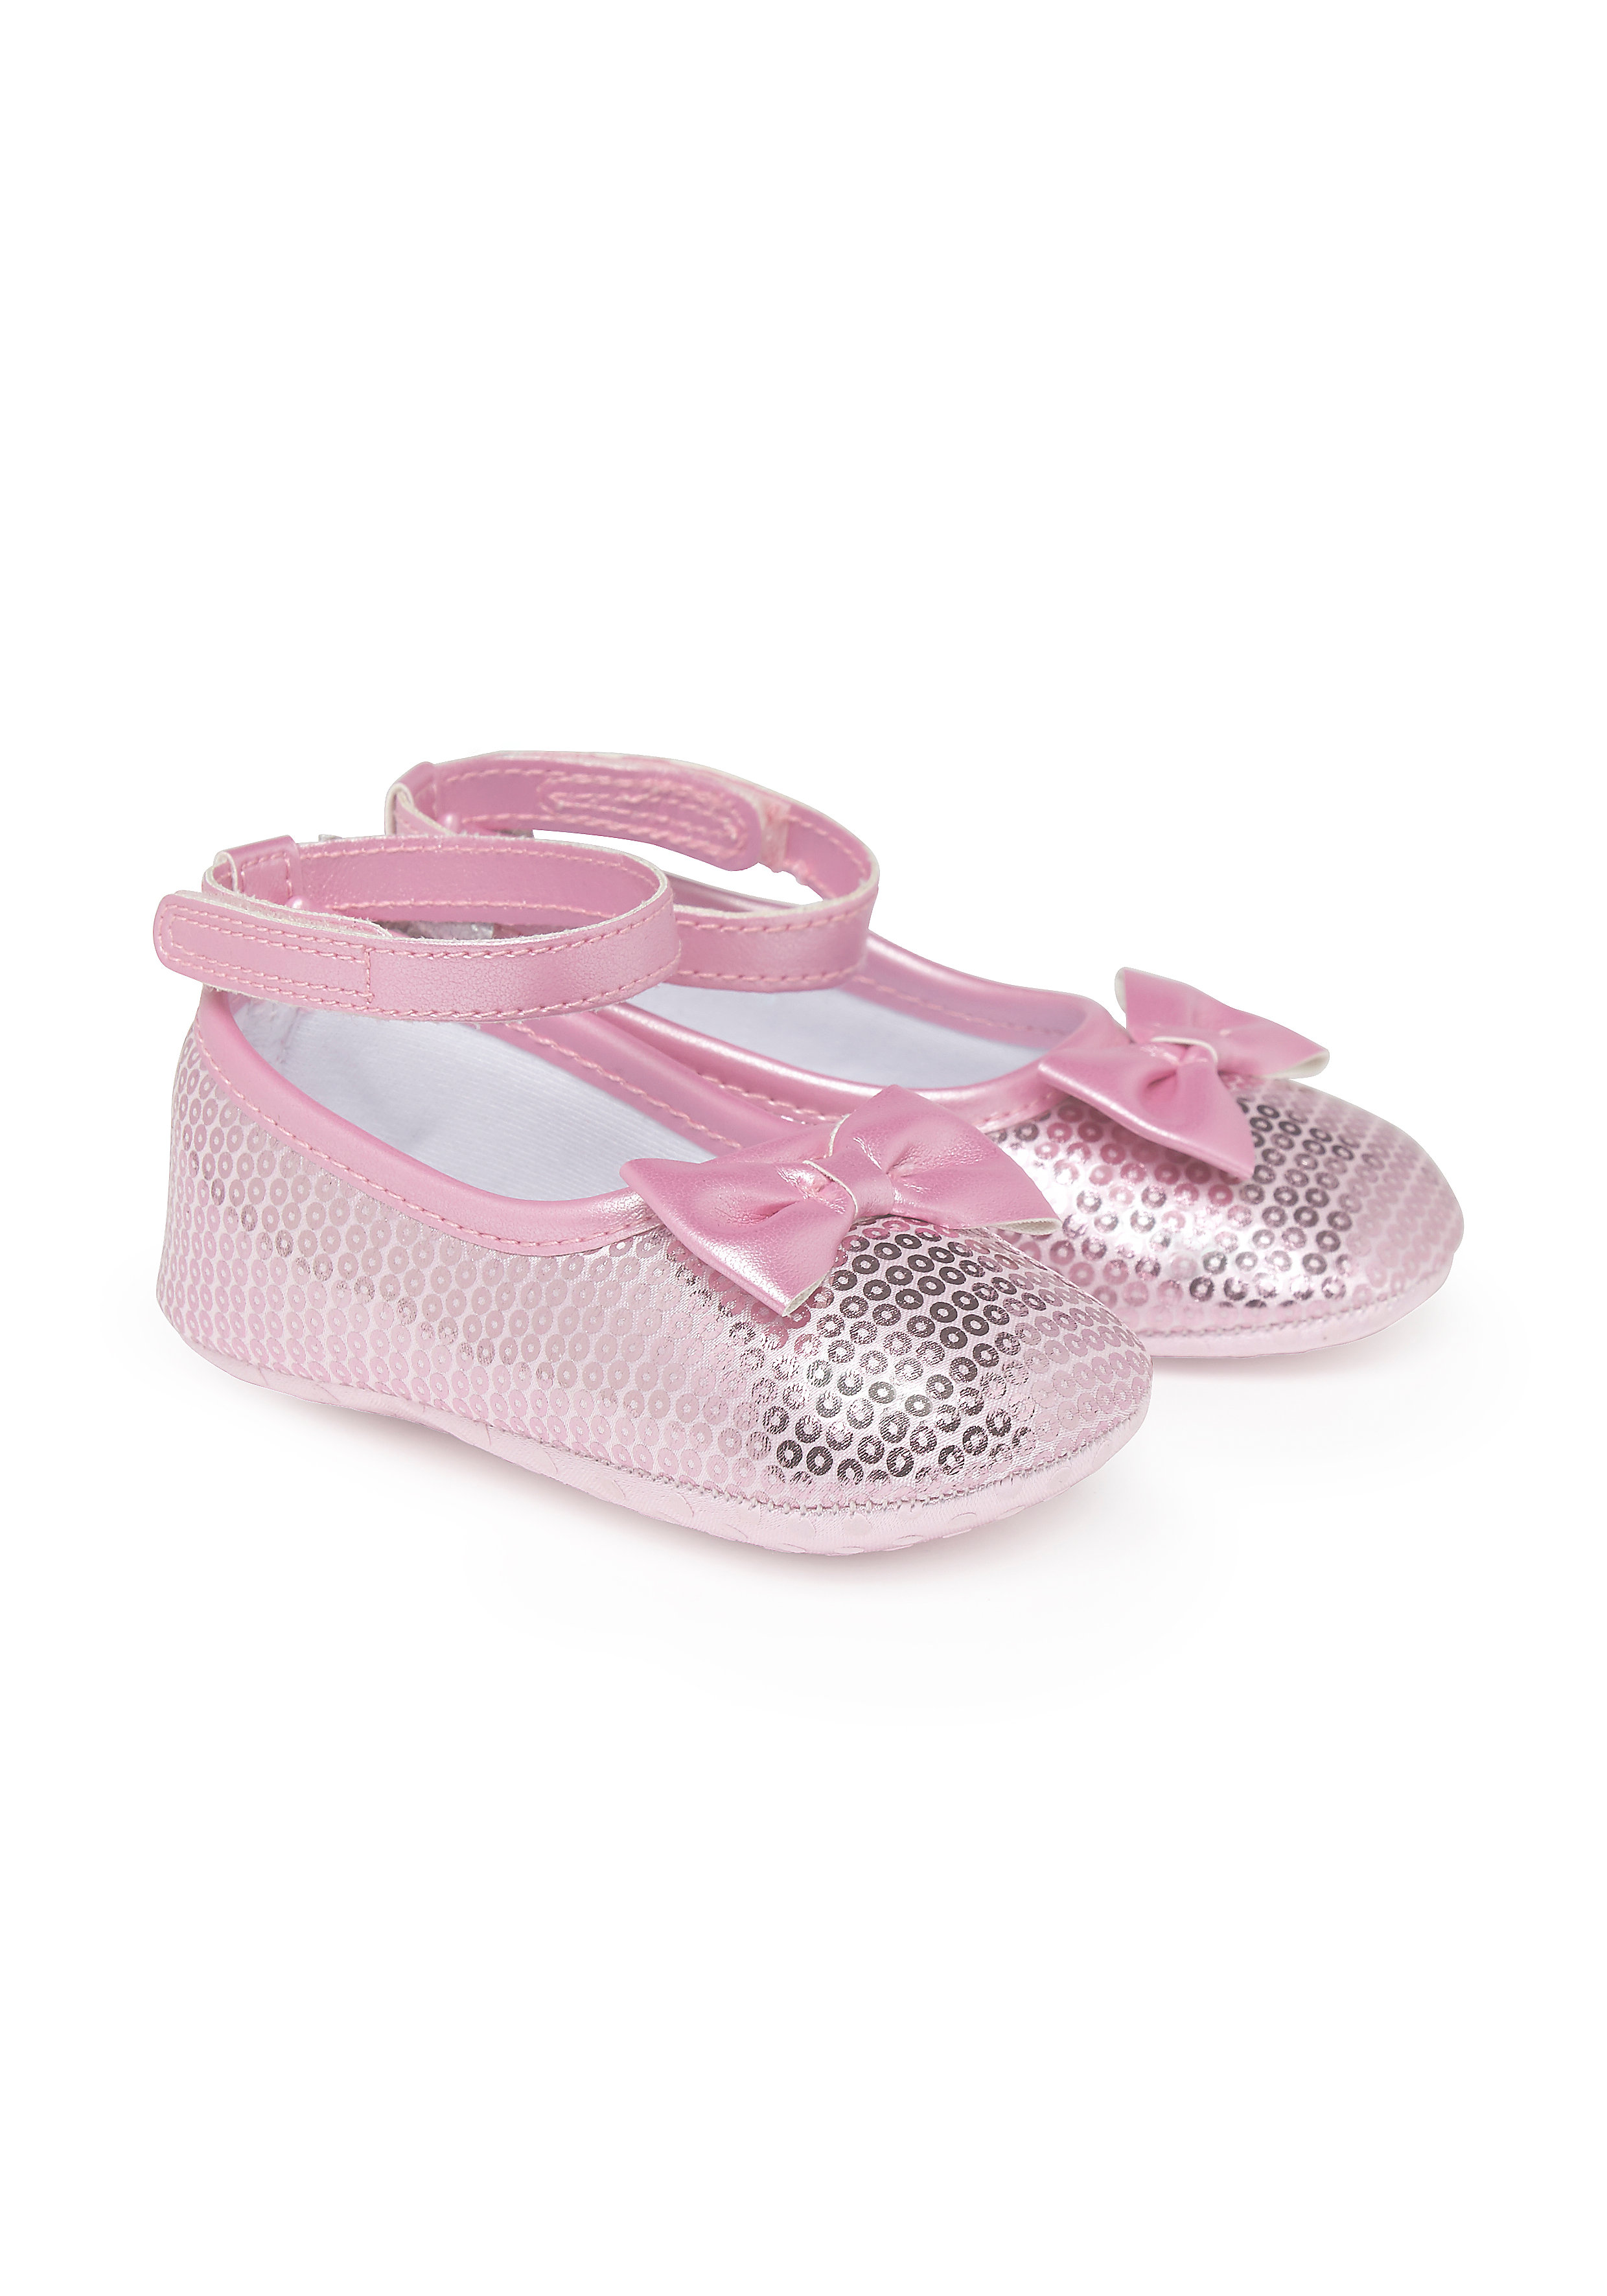 Mothercare | Girls Pram Shoes Sequin Bow Detail - Pink